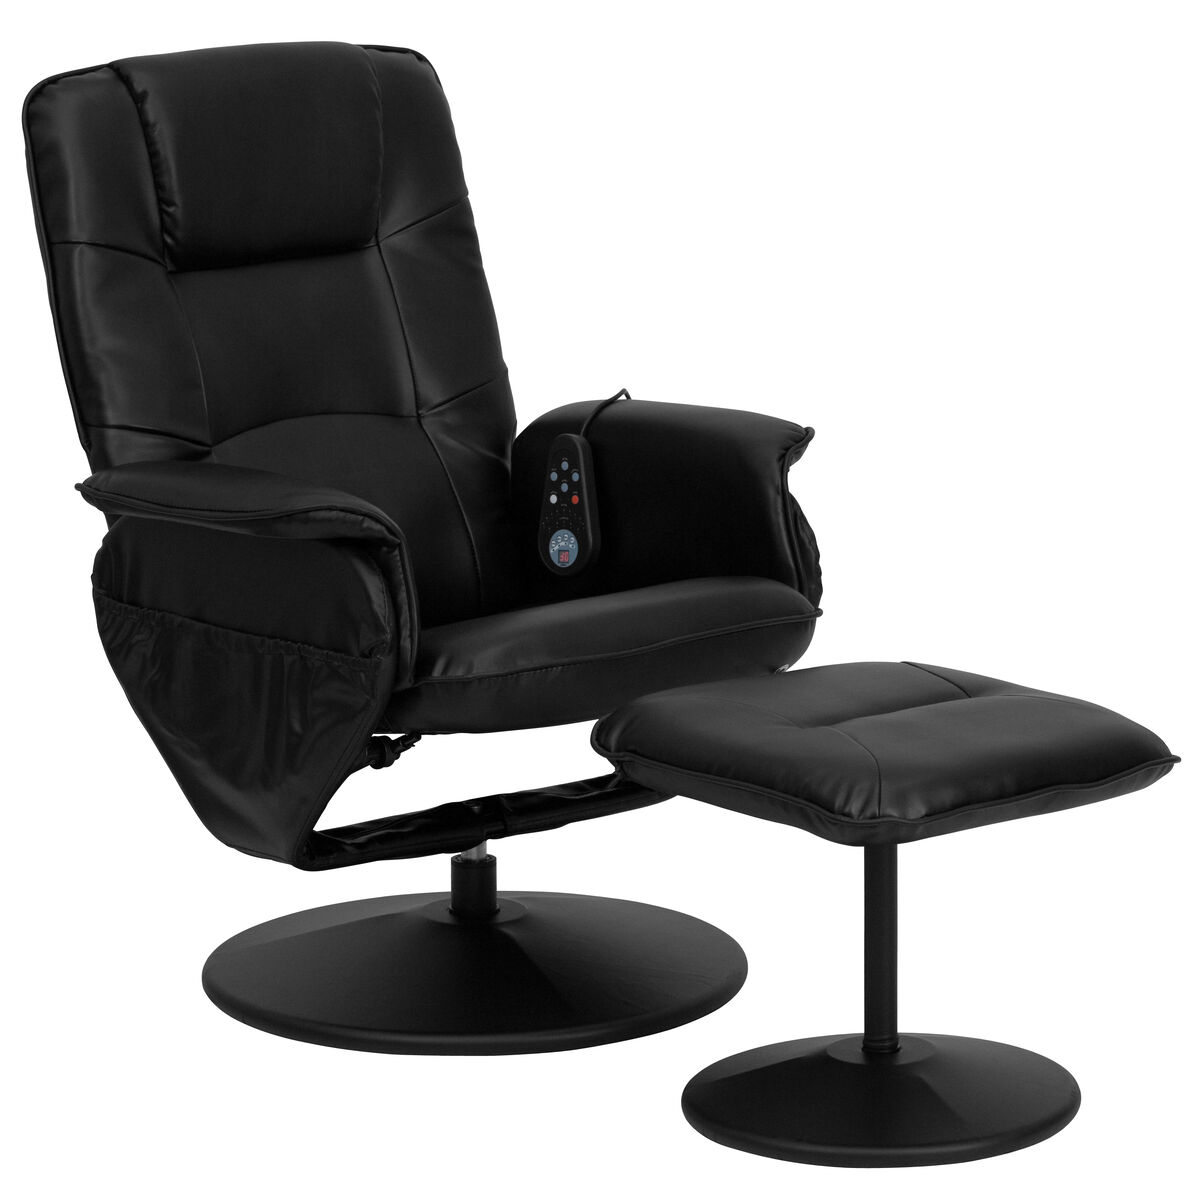 Our Massaging Black Leather Recliner With Deep Side Pockets And Ottoman Is On Now